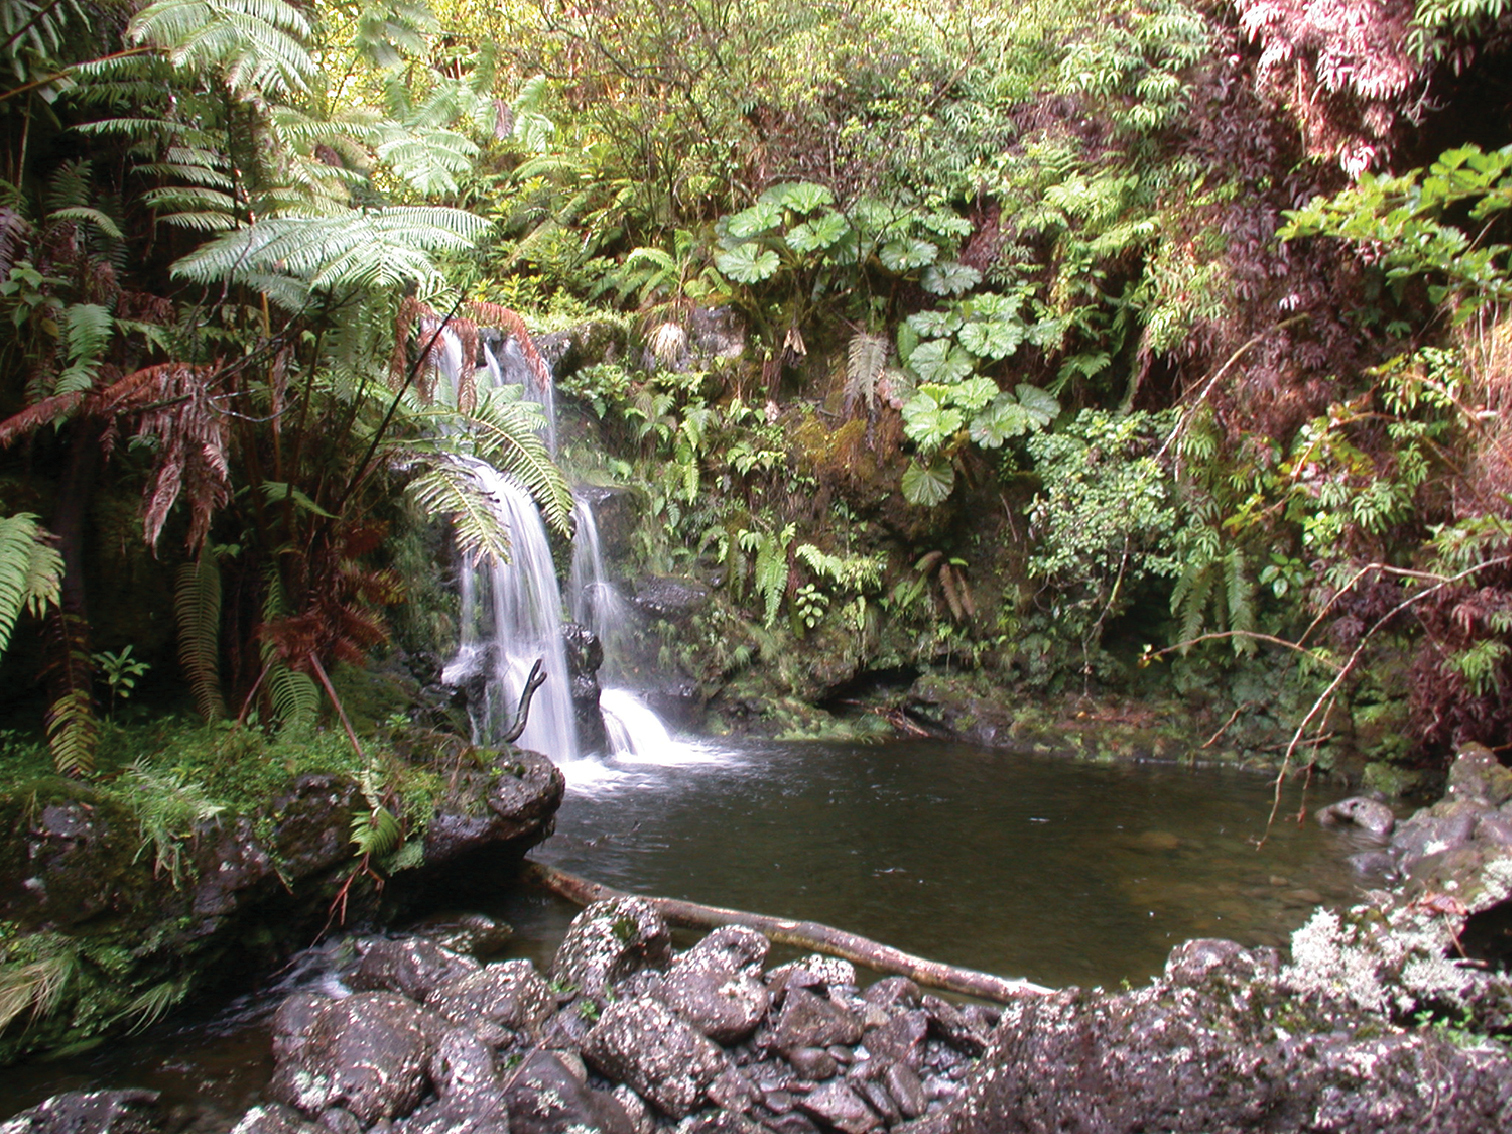 New fern species found near waterfalls in Maui